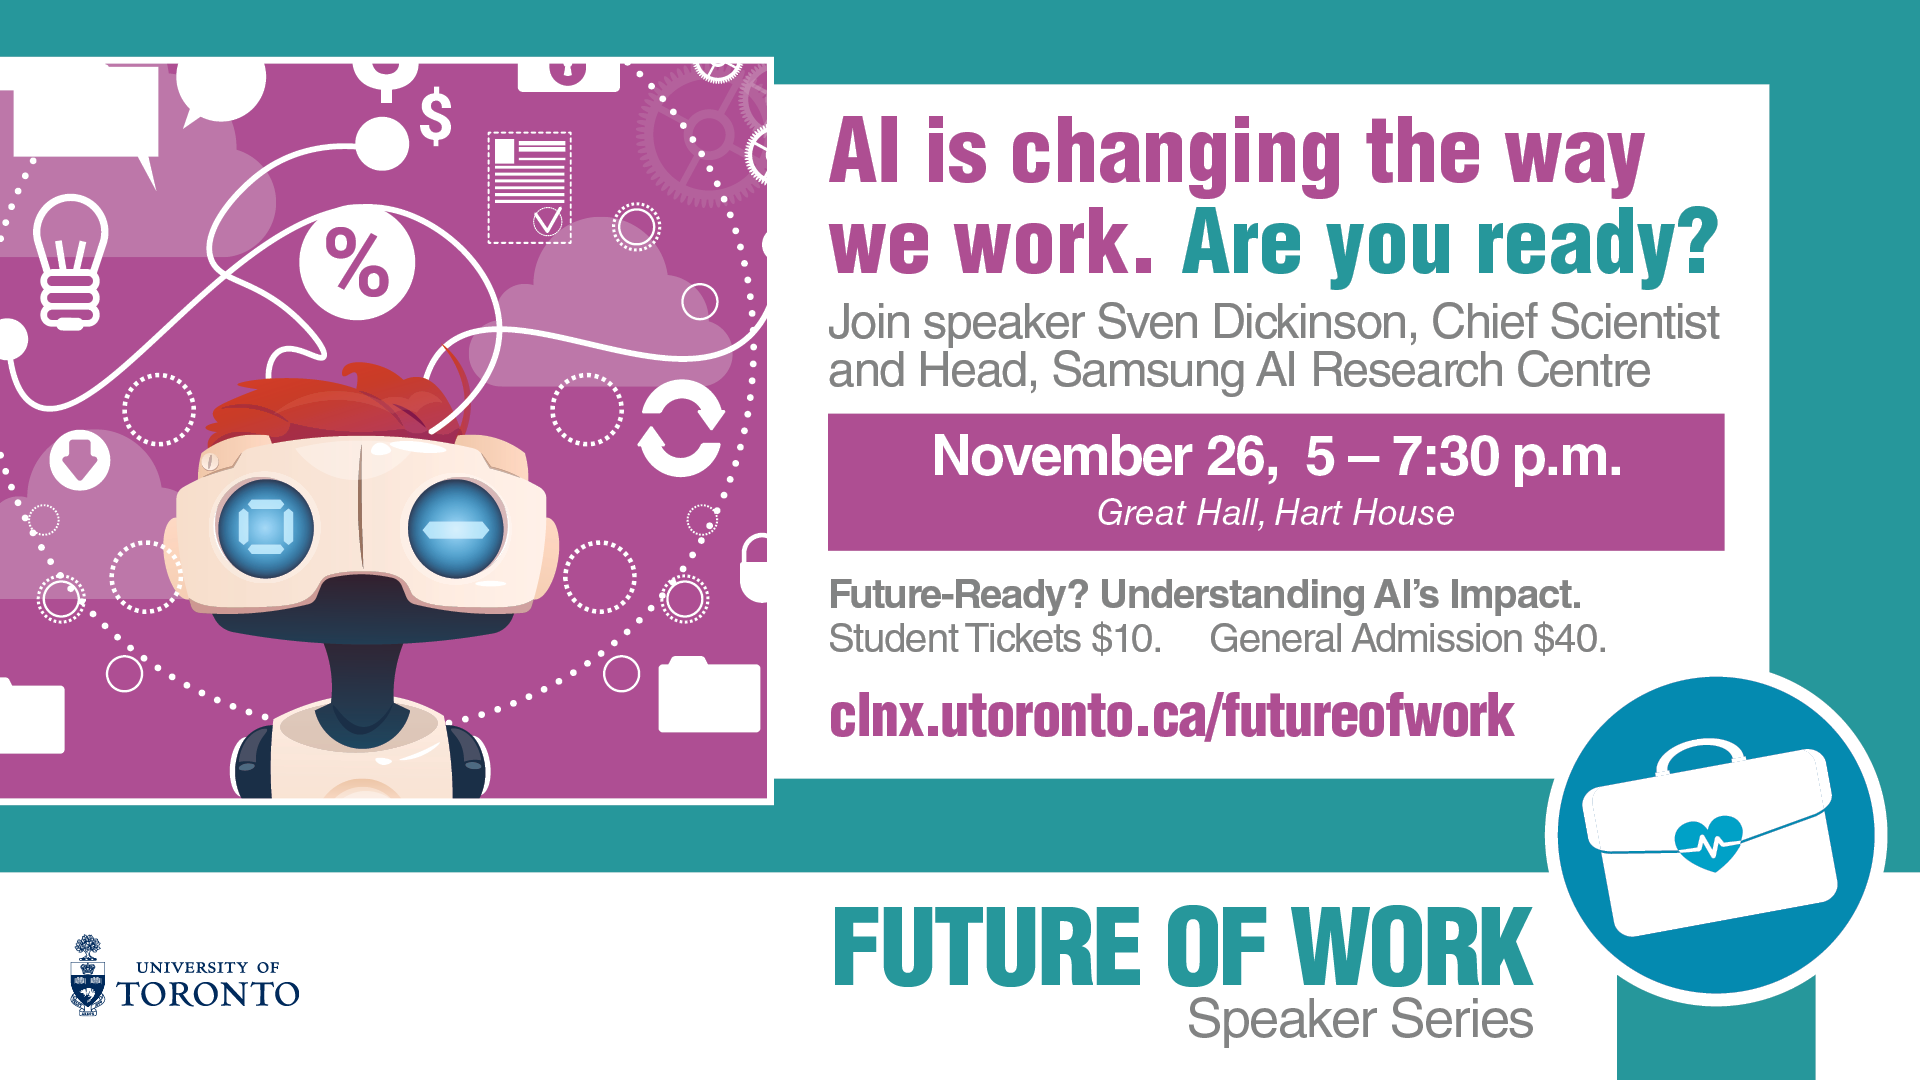 Future-Ready? Understanding AI's Impact @ Great Hall, Hart House | Toronto | Ontario | Canada